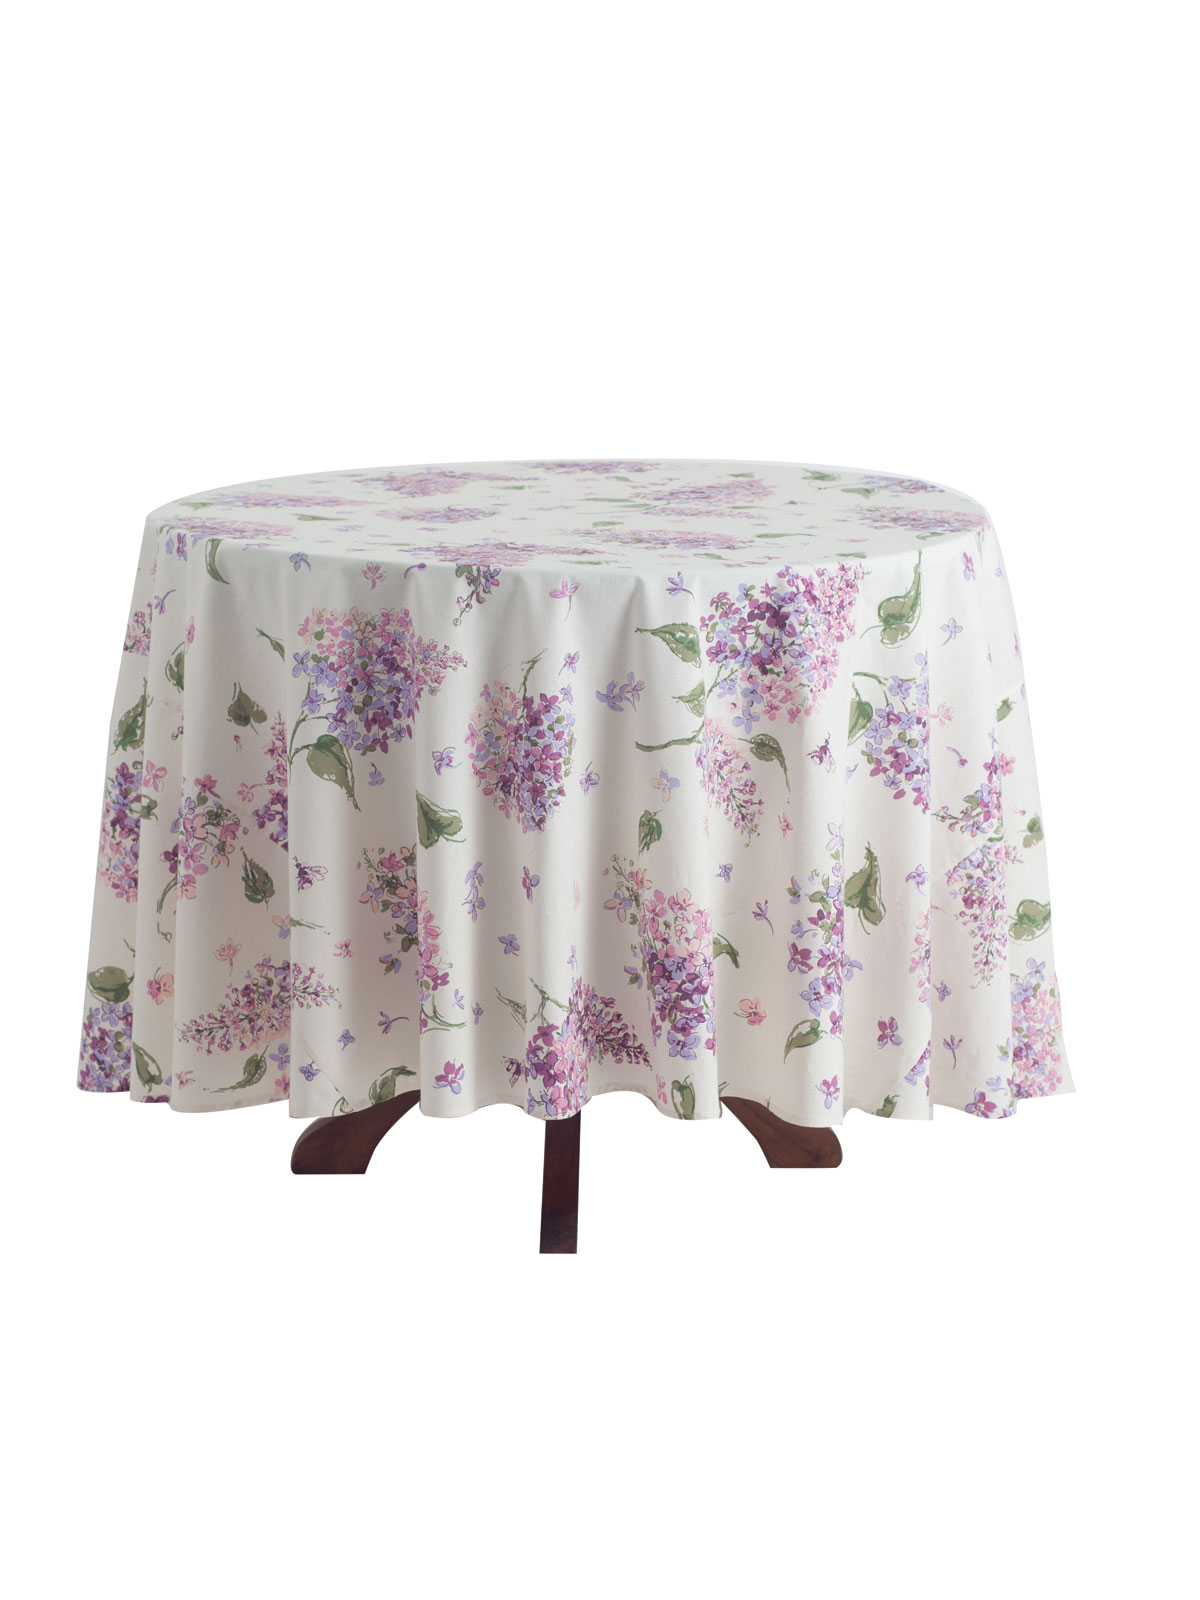 Lilac Round Tablecloth Linens Kitchen Tablecloths